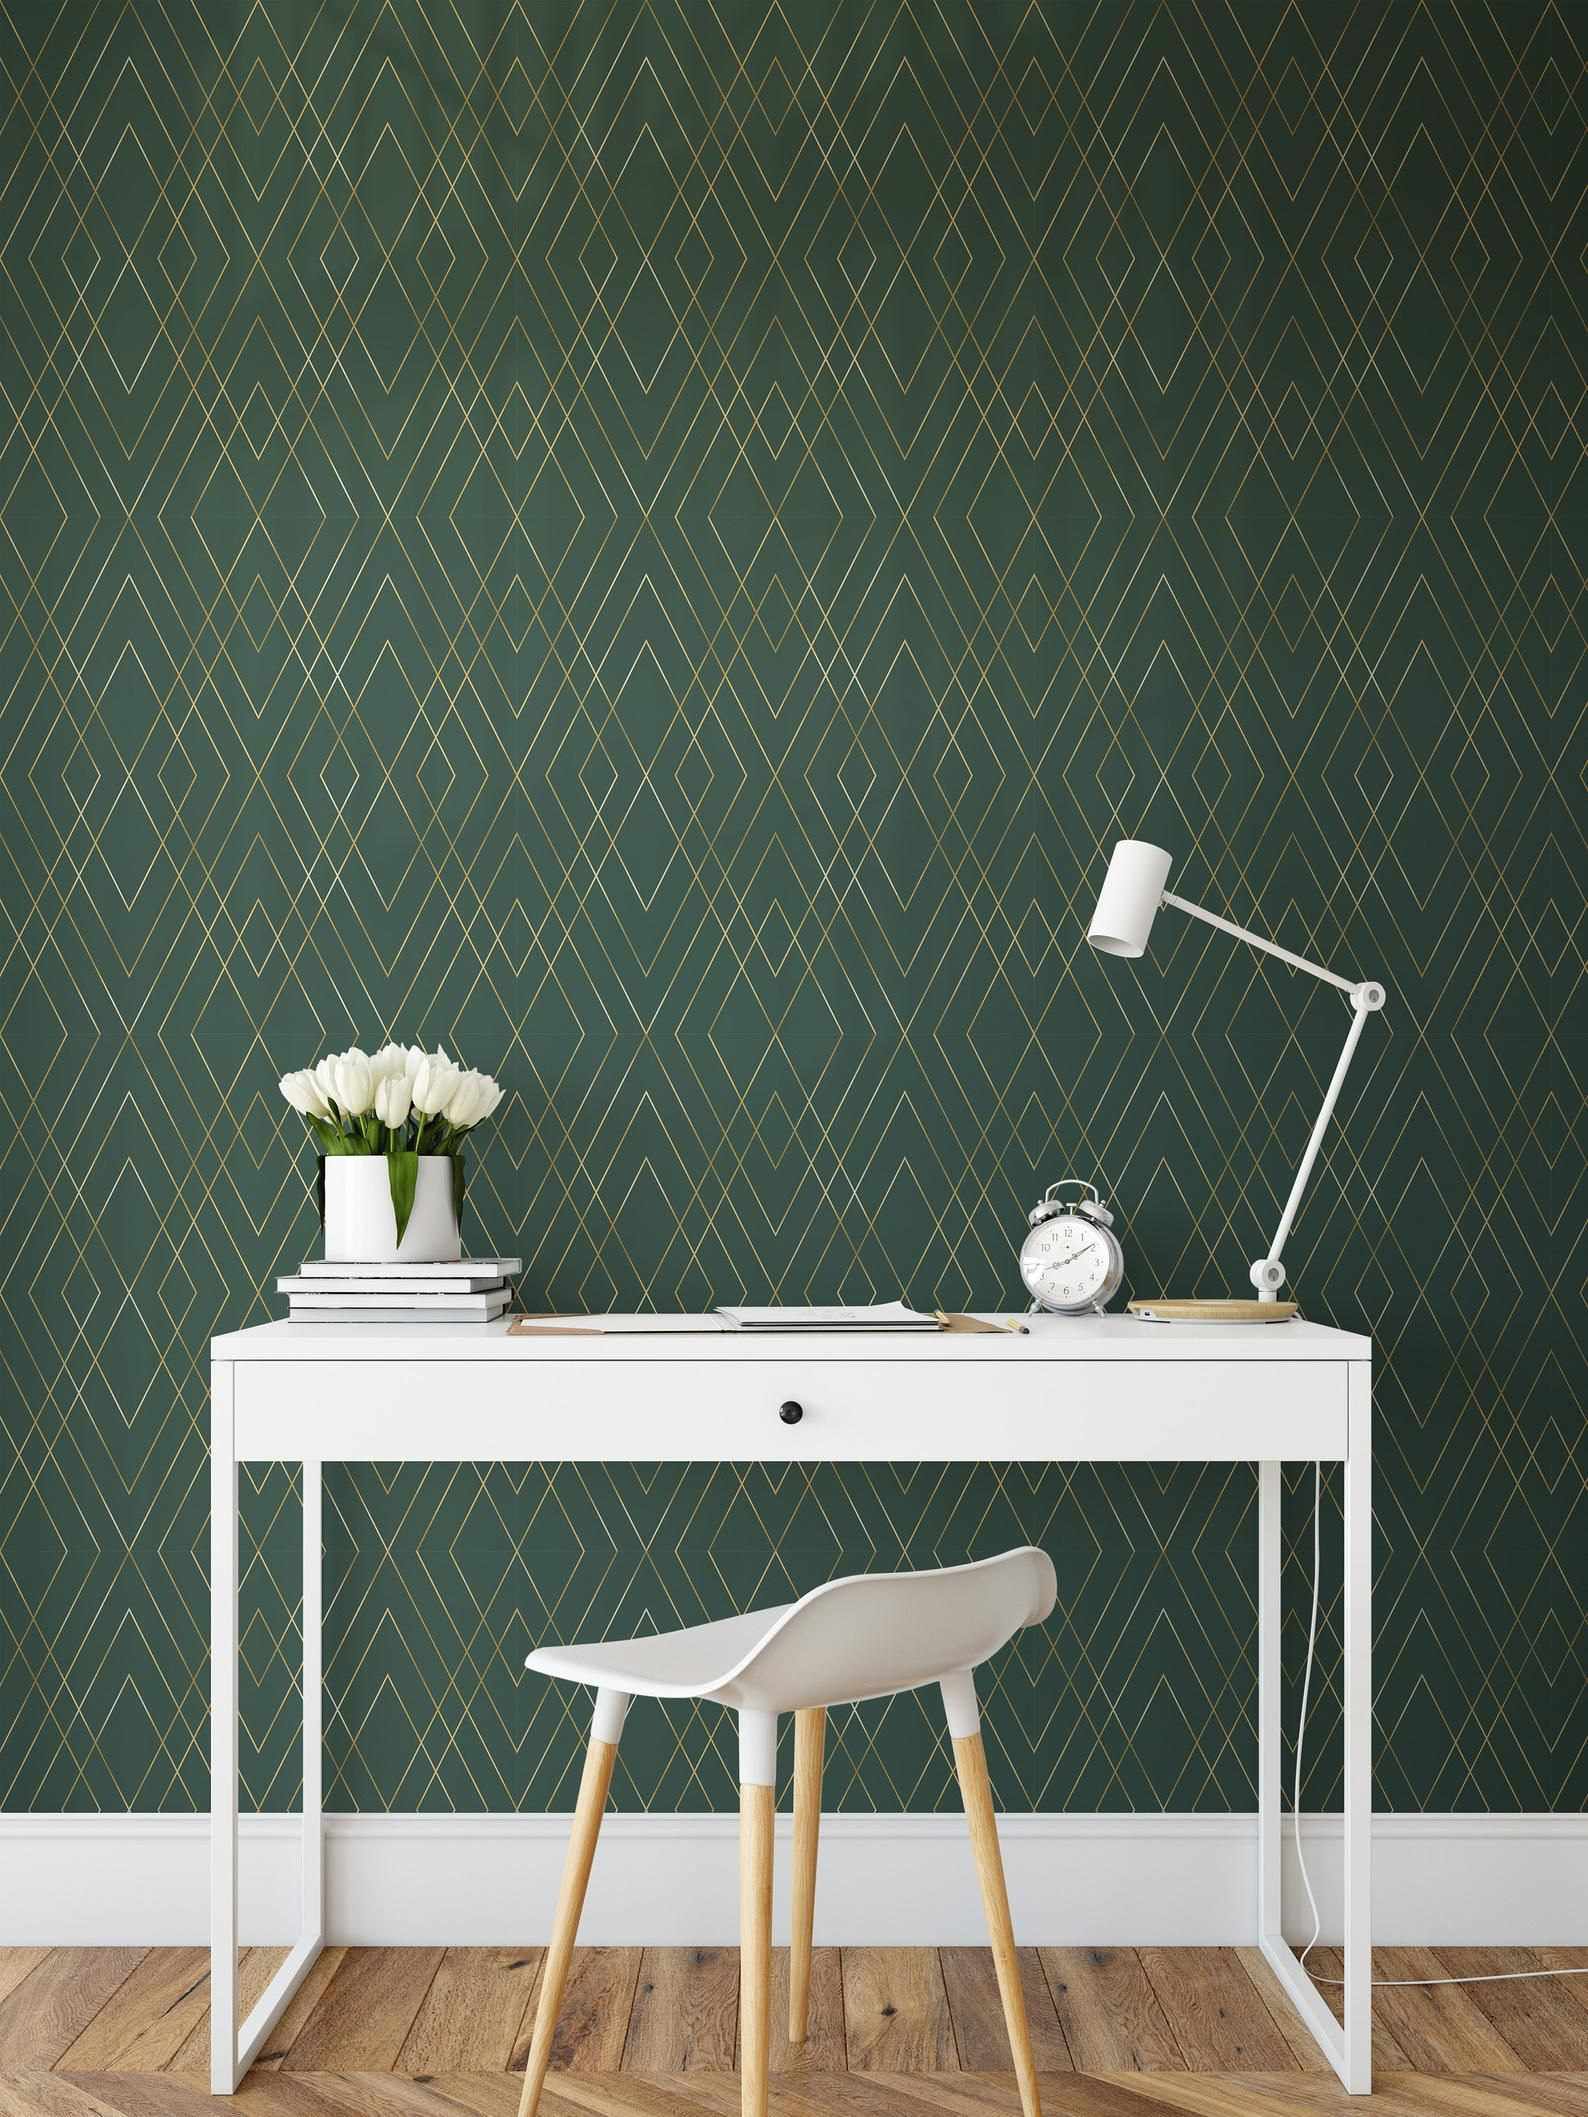 Green Gold Peel And Stick Wallpaper Self Adhesive Geometric Etsy In 2020 Accent Walls In Living Room Peel And Stick Wallpaper Green Accent Walls